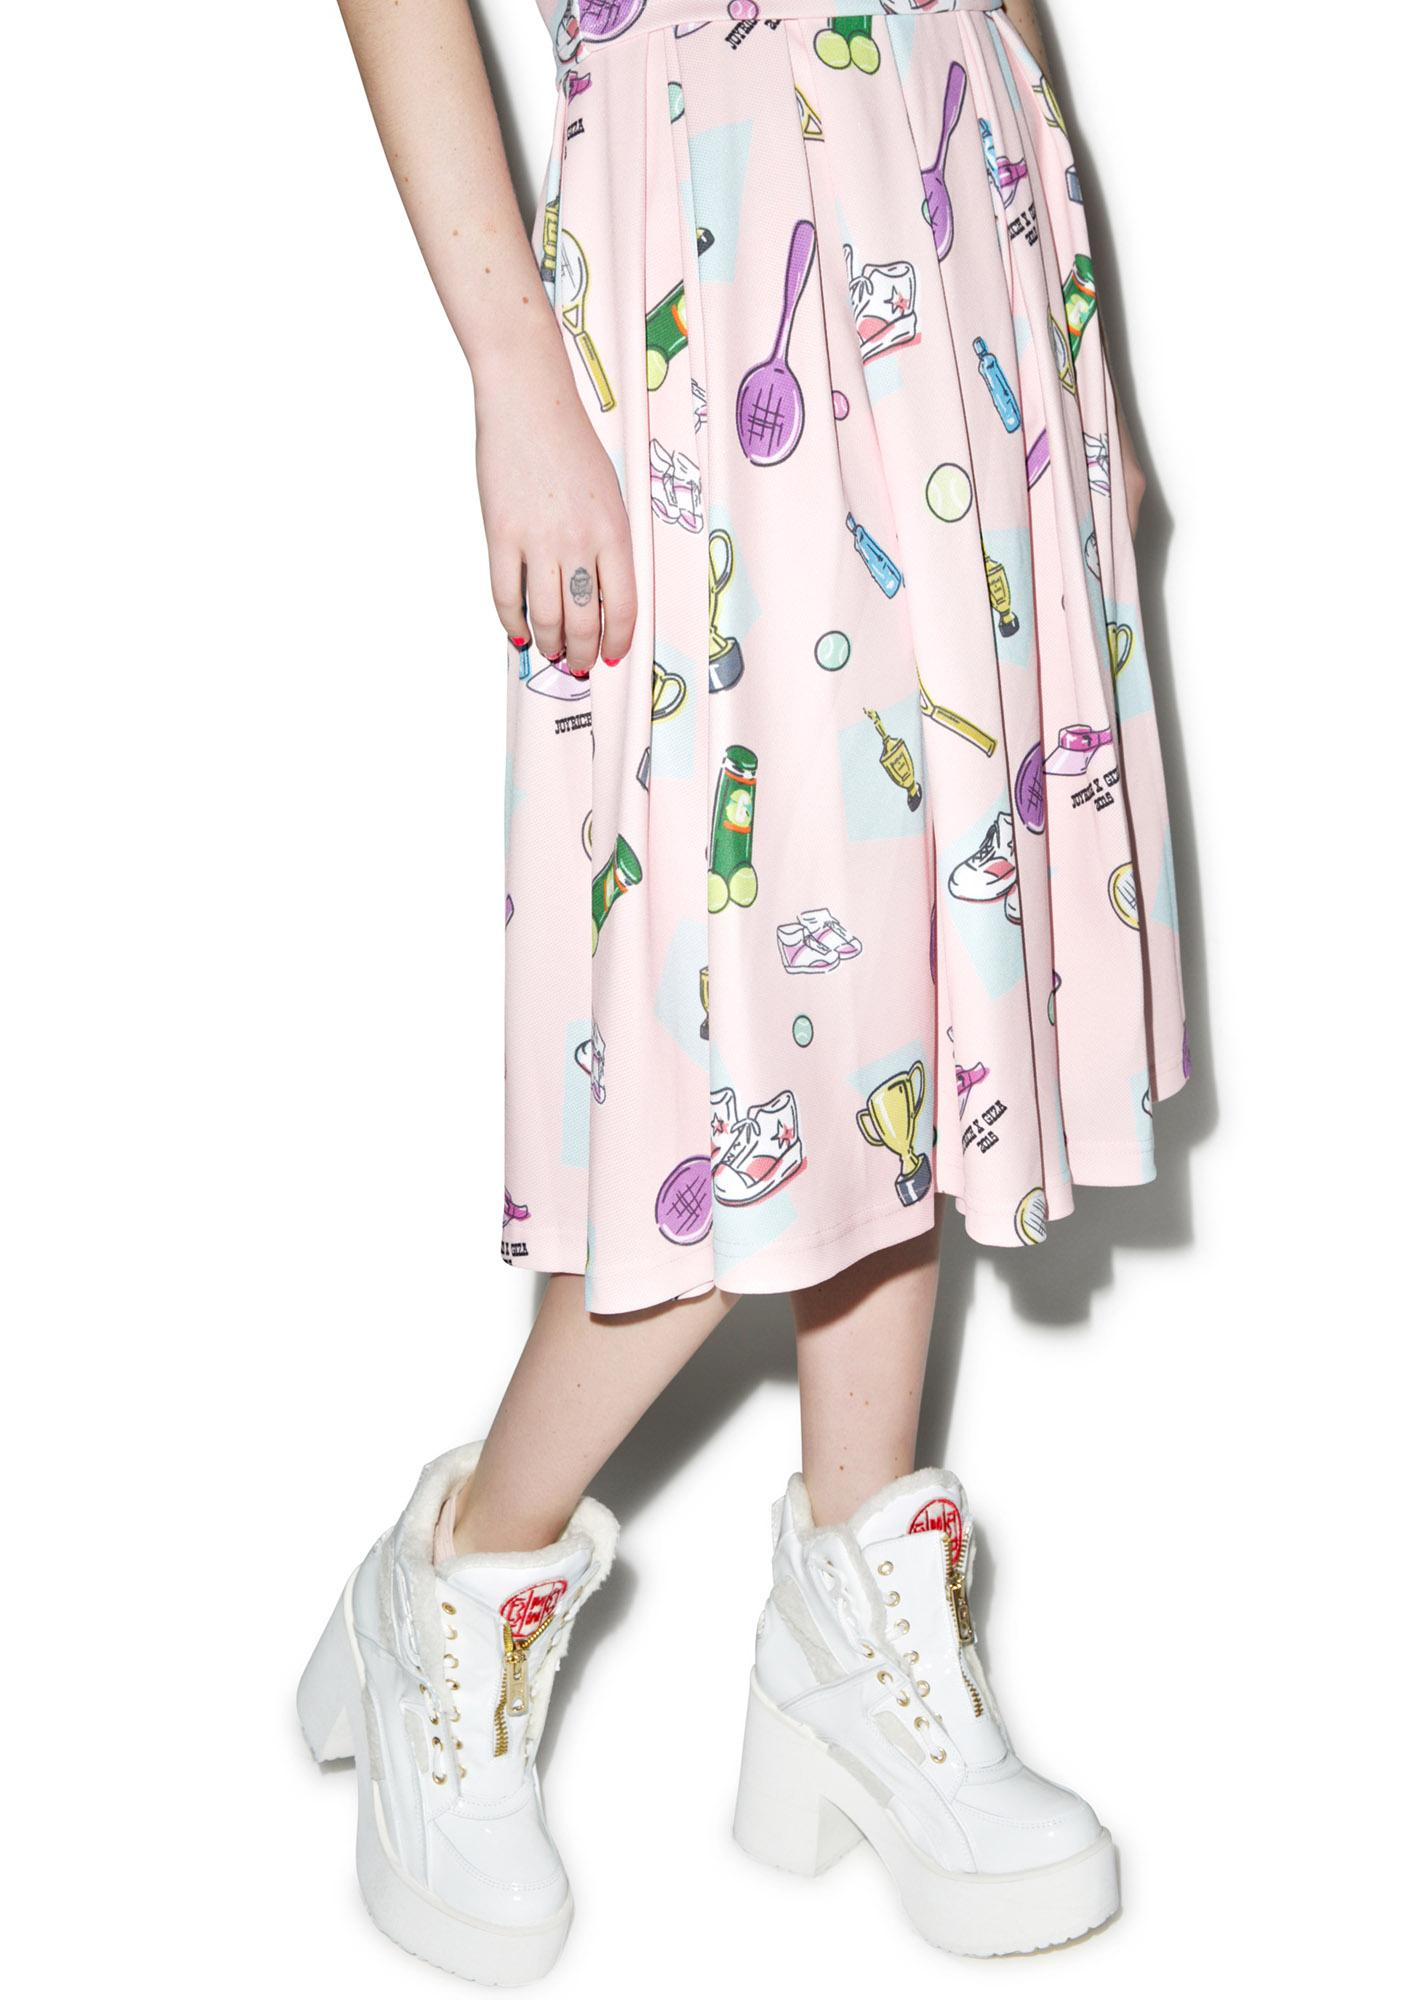 Joyrich X GIZA Tennis Club Retro Tennis Skirt